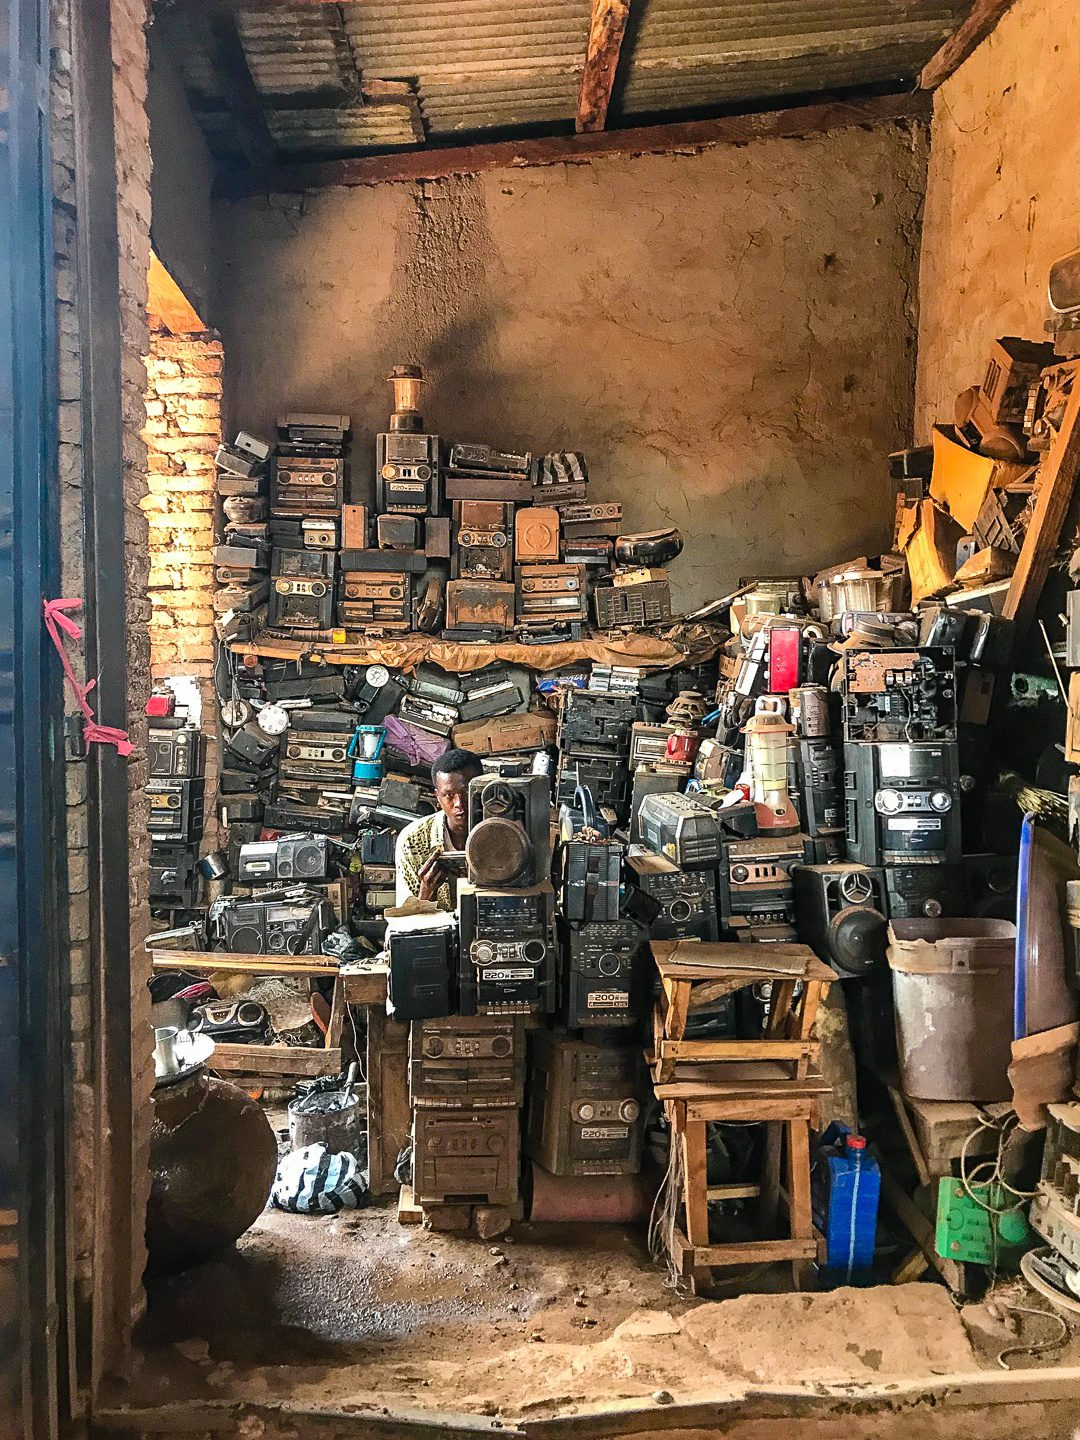 An electronics stall in the market in South Sudan.